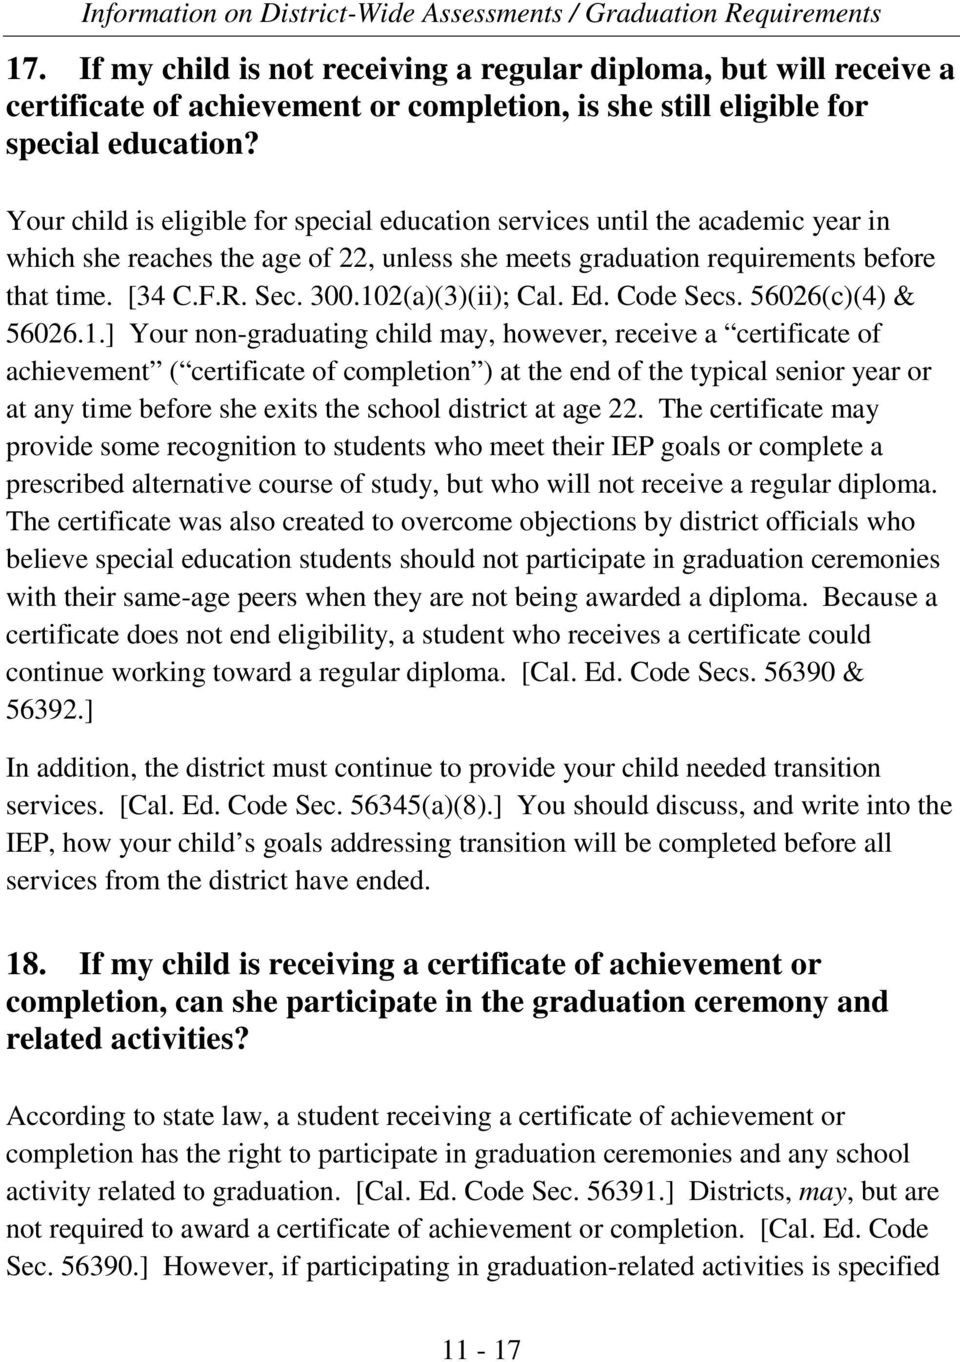 102(a)(3)(ii); Cal. Ed. Code Secs. 56026(c)(4) & 56026.1.] Your non-graduating child may, however, receive a certificate of achievement ( certificate of completion ) at the end of the typical senior